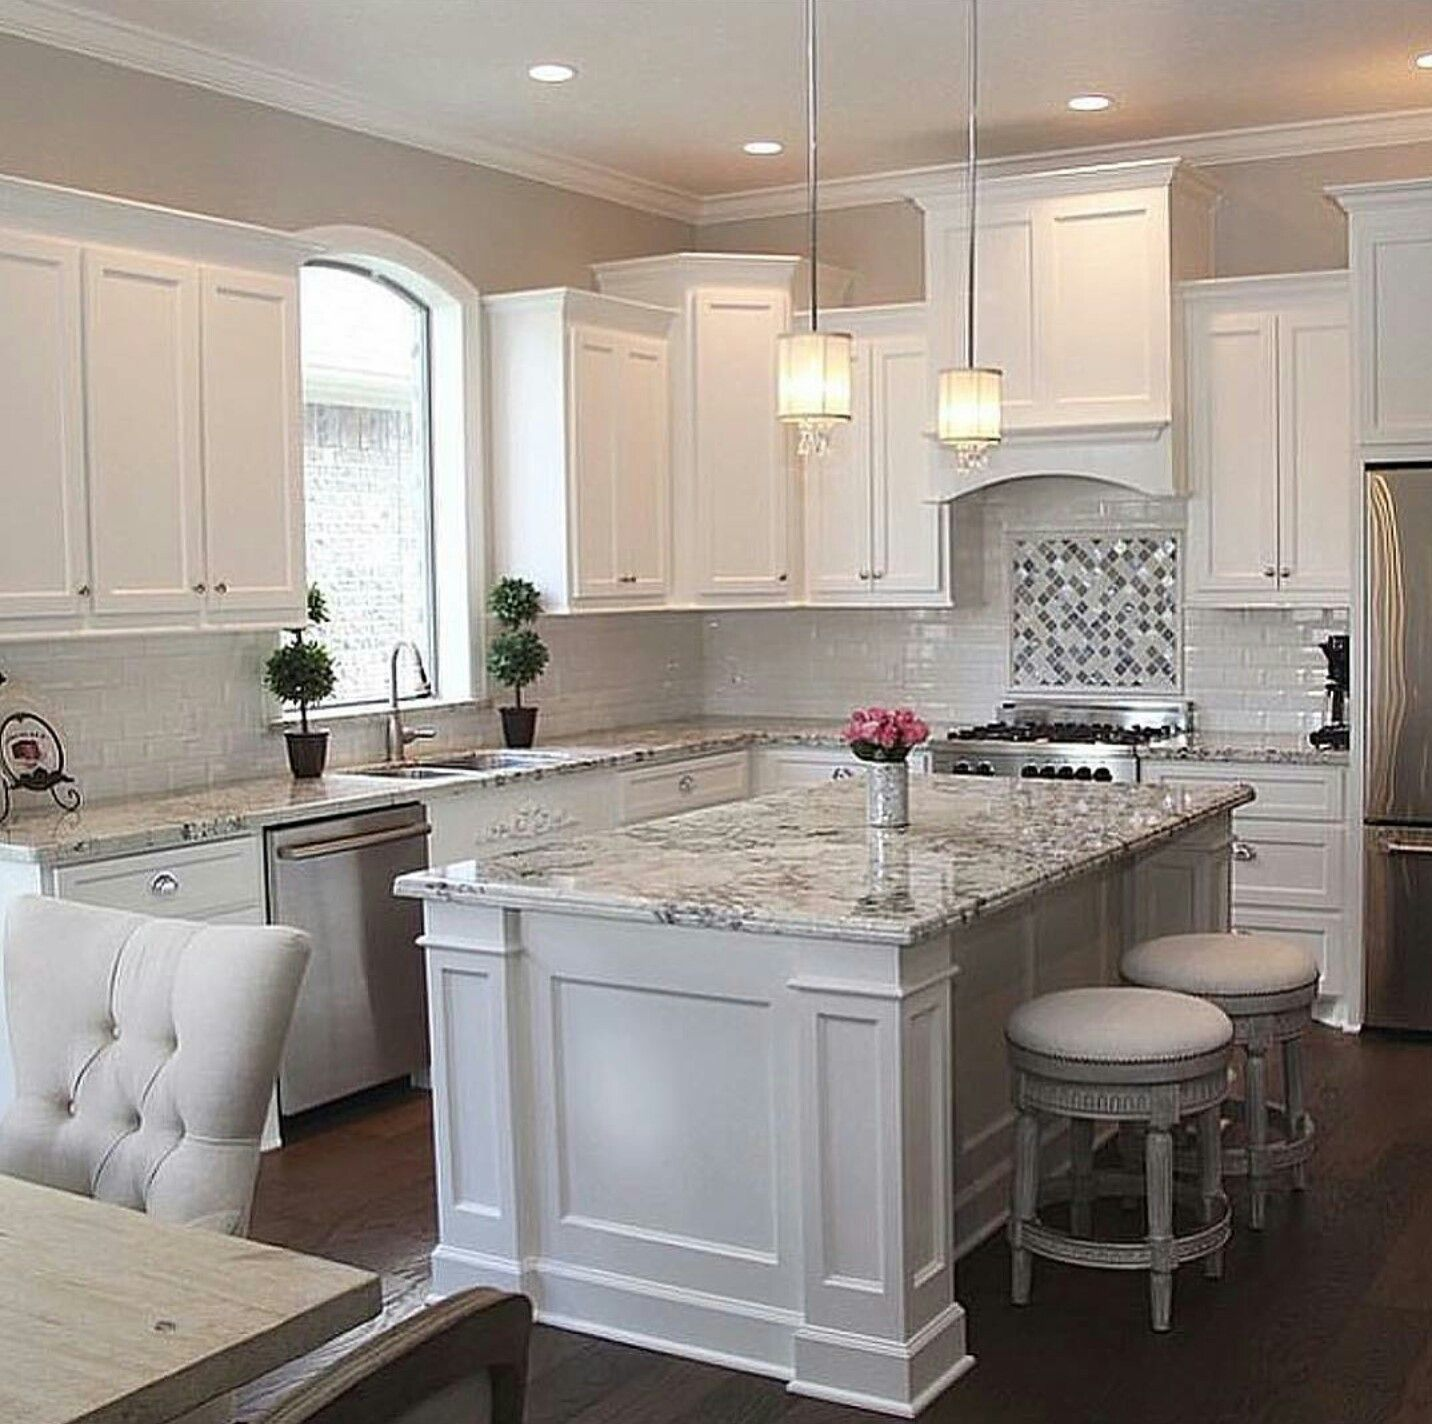 White Cabinets Stainless Steel